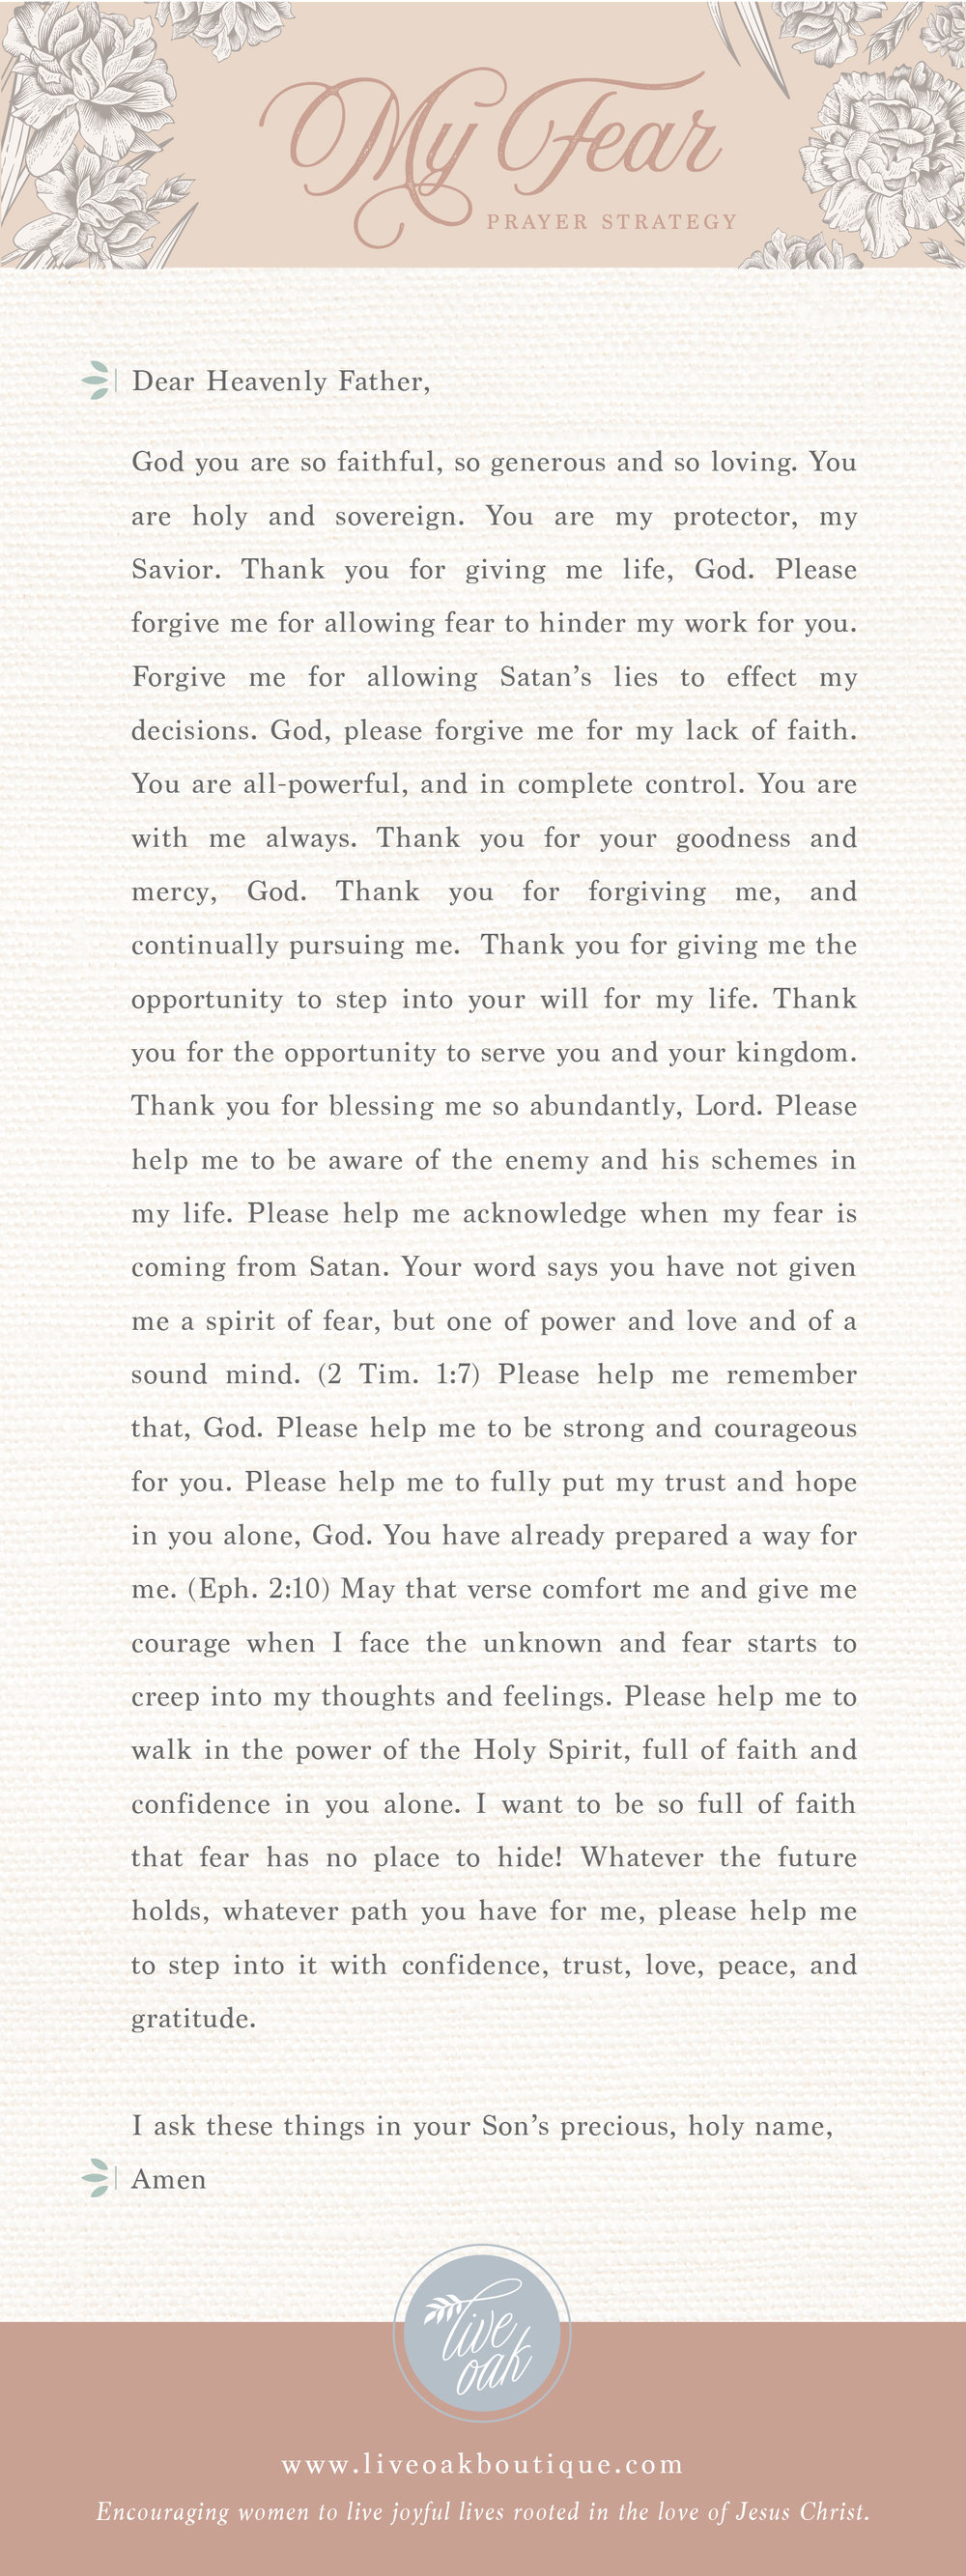 Prayer Strategy for Your Fears from Live Oak Boutique. Stationery and gifts rooted in the love of Jesus Christ! www.liveoakboutique.com